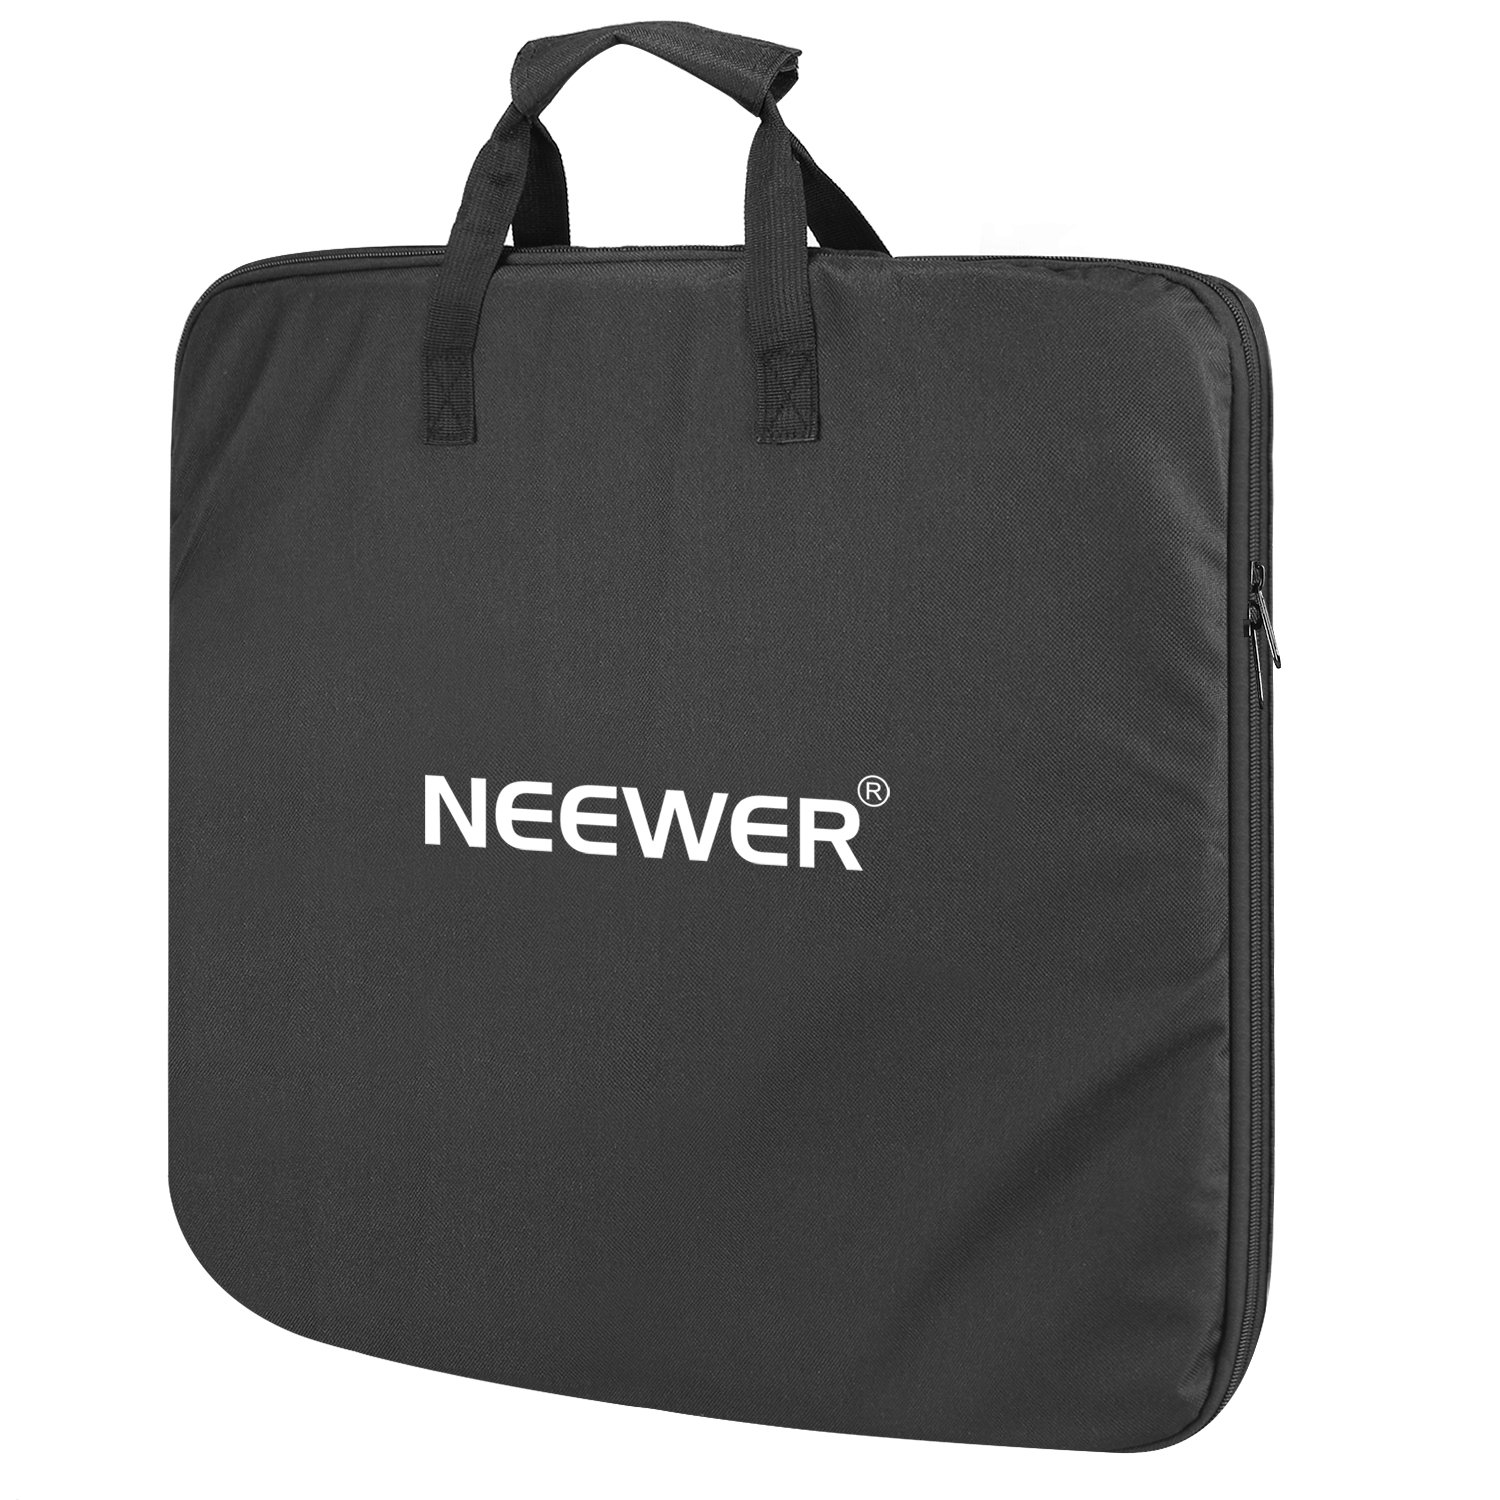 Neewer Photography Carrying Bag Protective Case Compatible with 14 inches Camera Ring Light - 15.75x15.75 inches/40x40 Centimeters, Durable Nylon, Light Weight (Black) 10093167NE